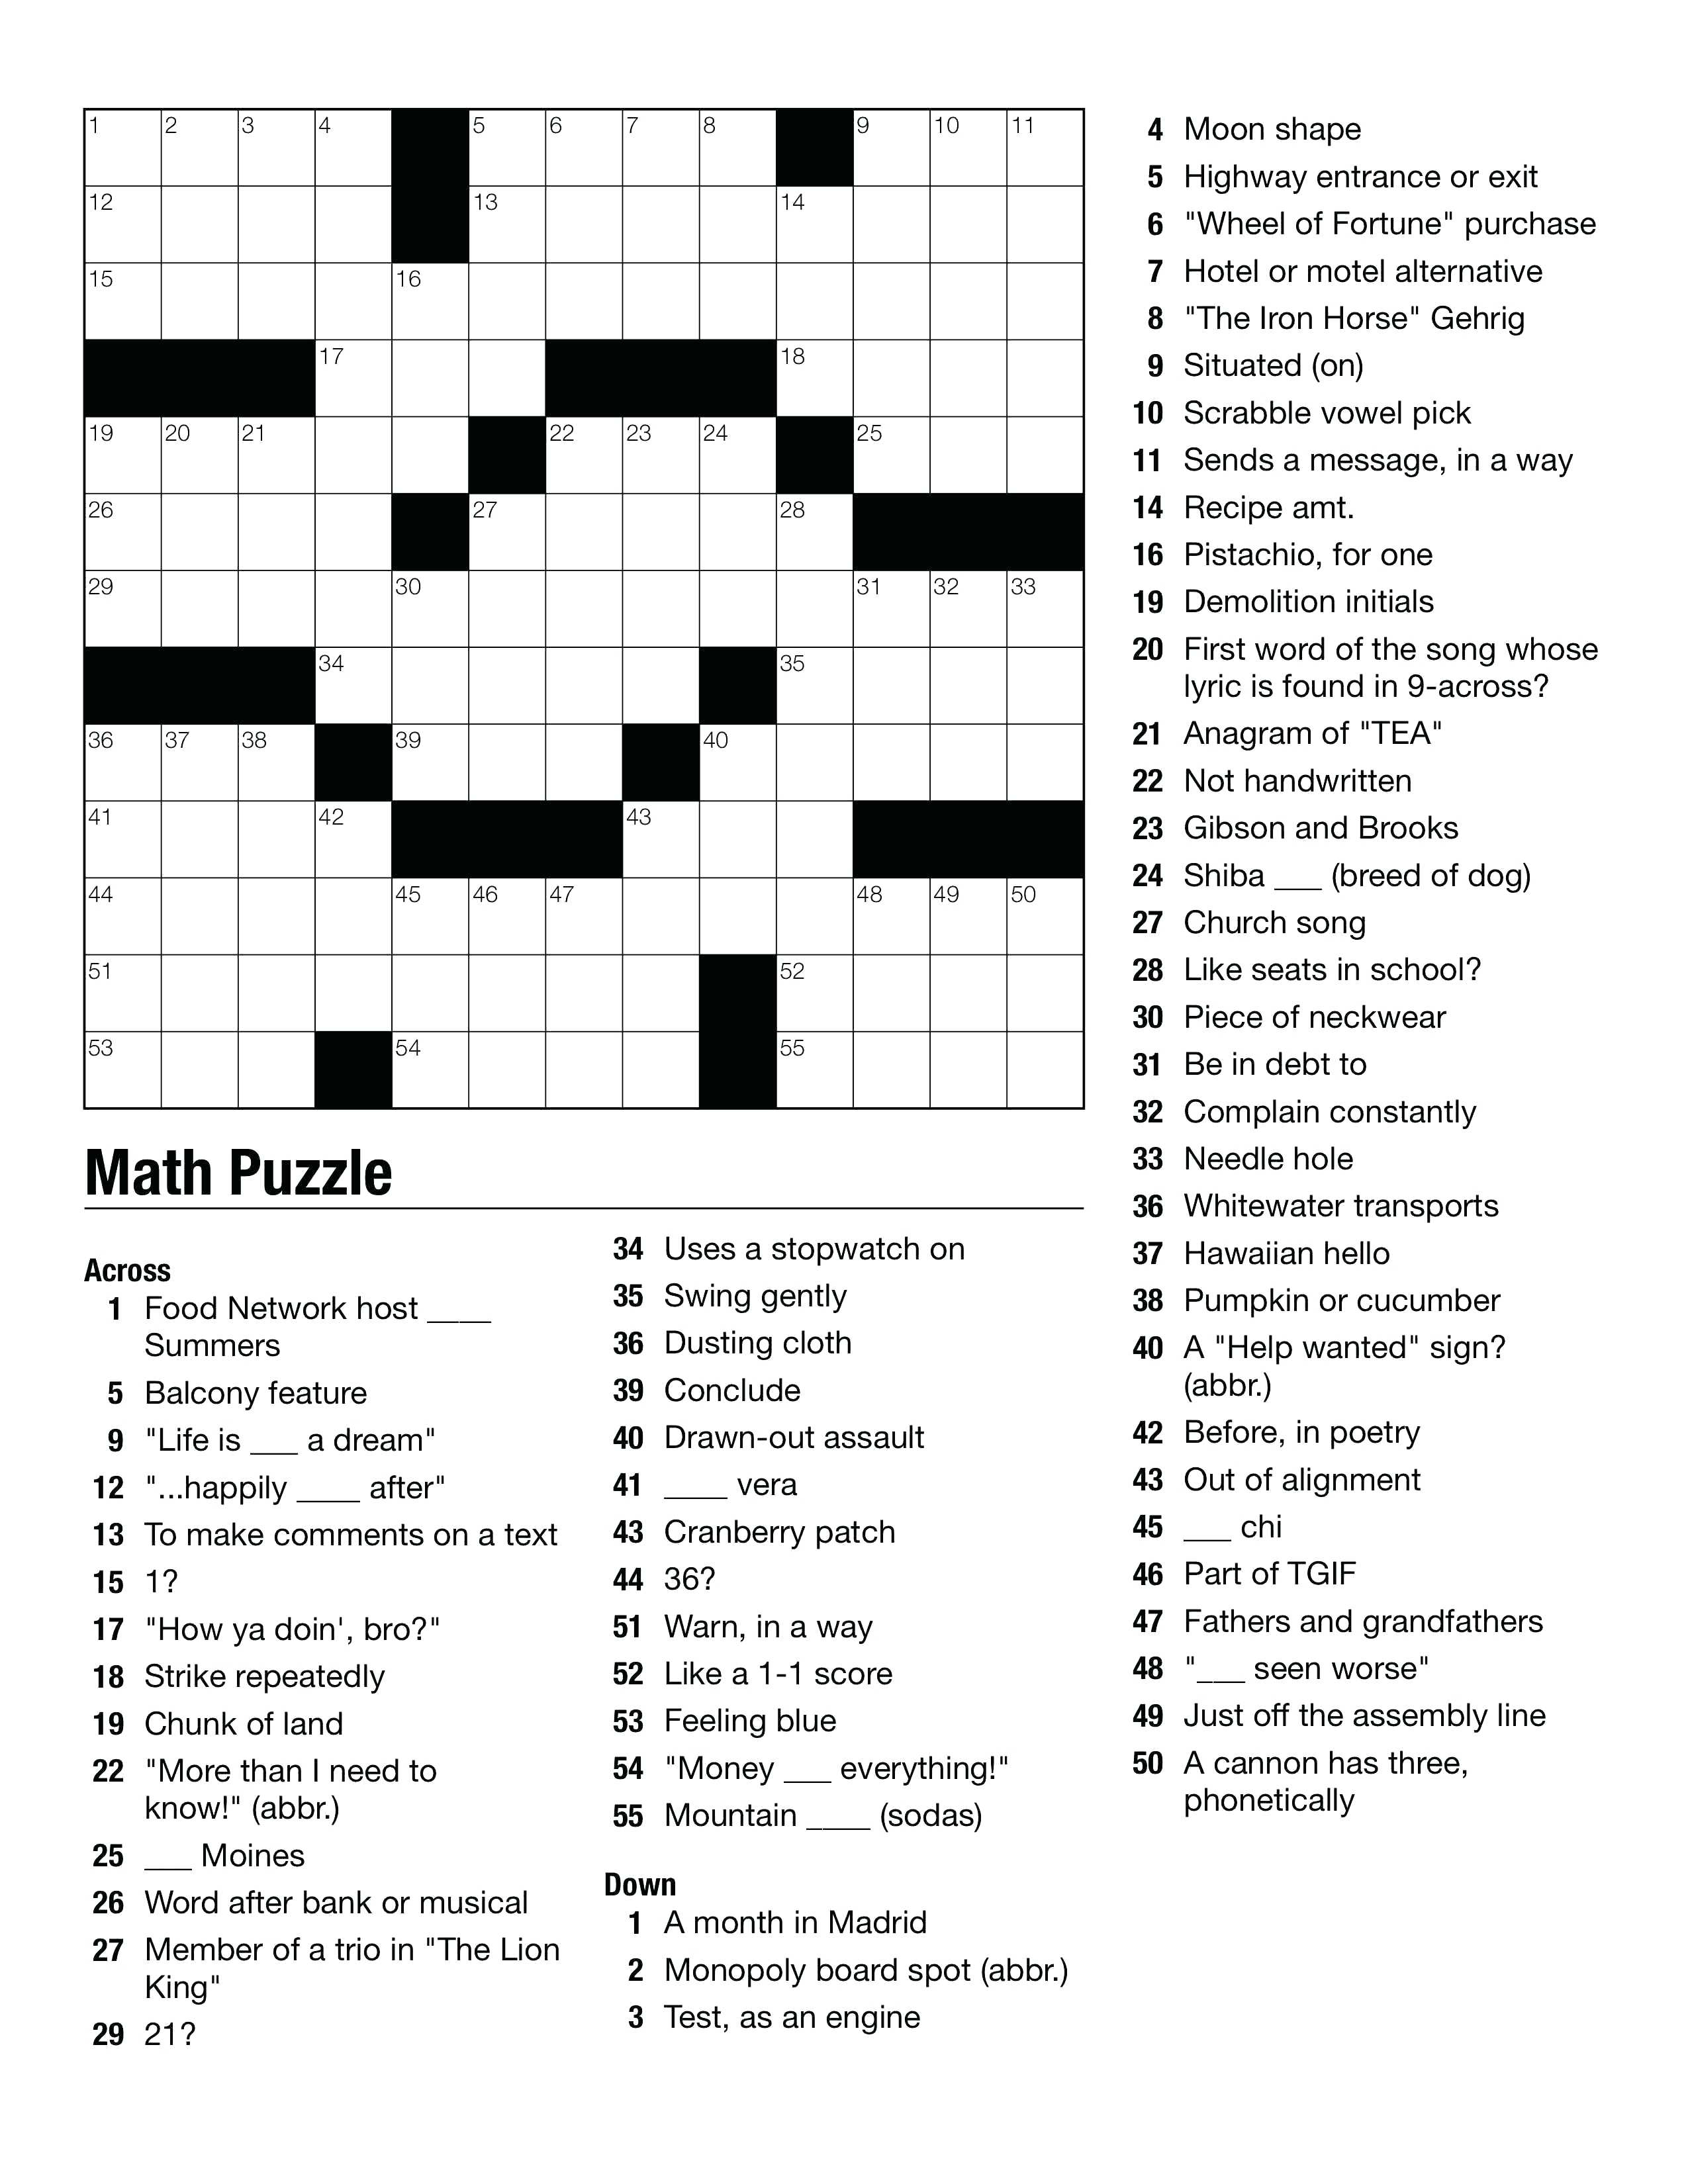 Geometry Puzzles Math Geometry Images Teaching Ideas On Crossword - Winter Crossword Puzzle Printable